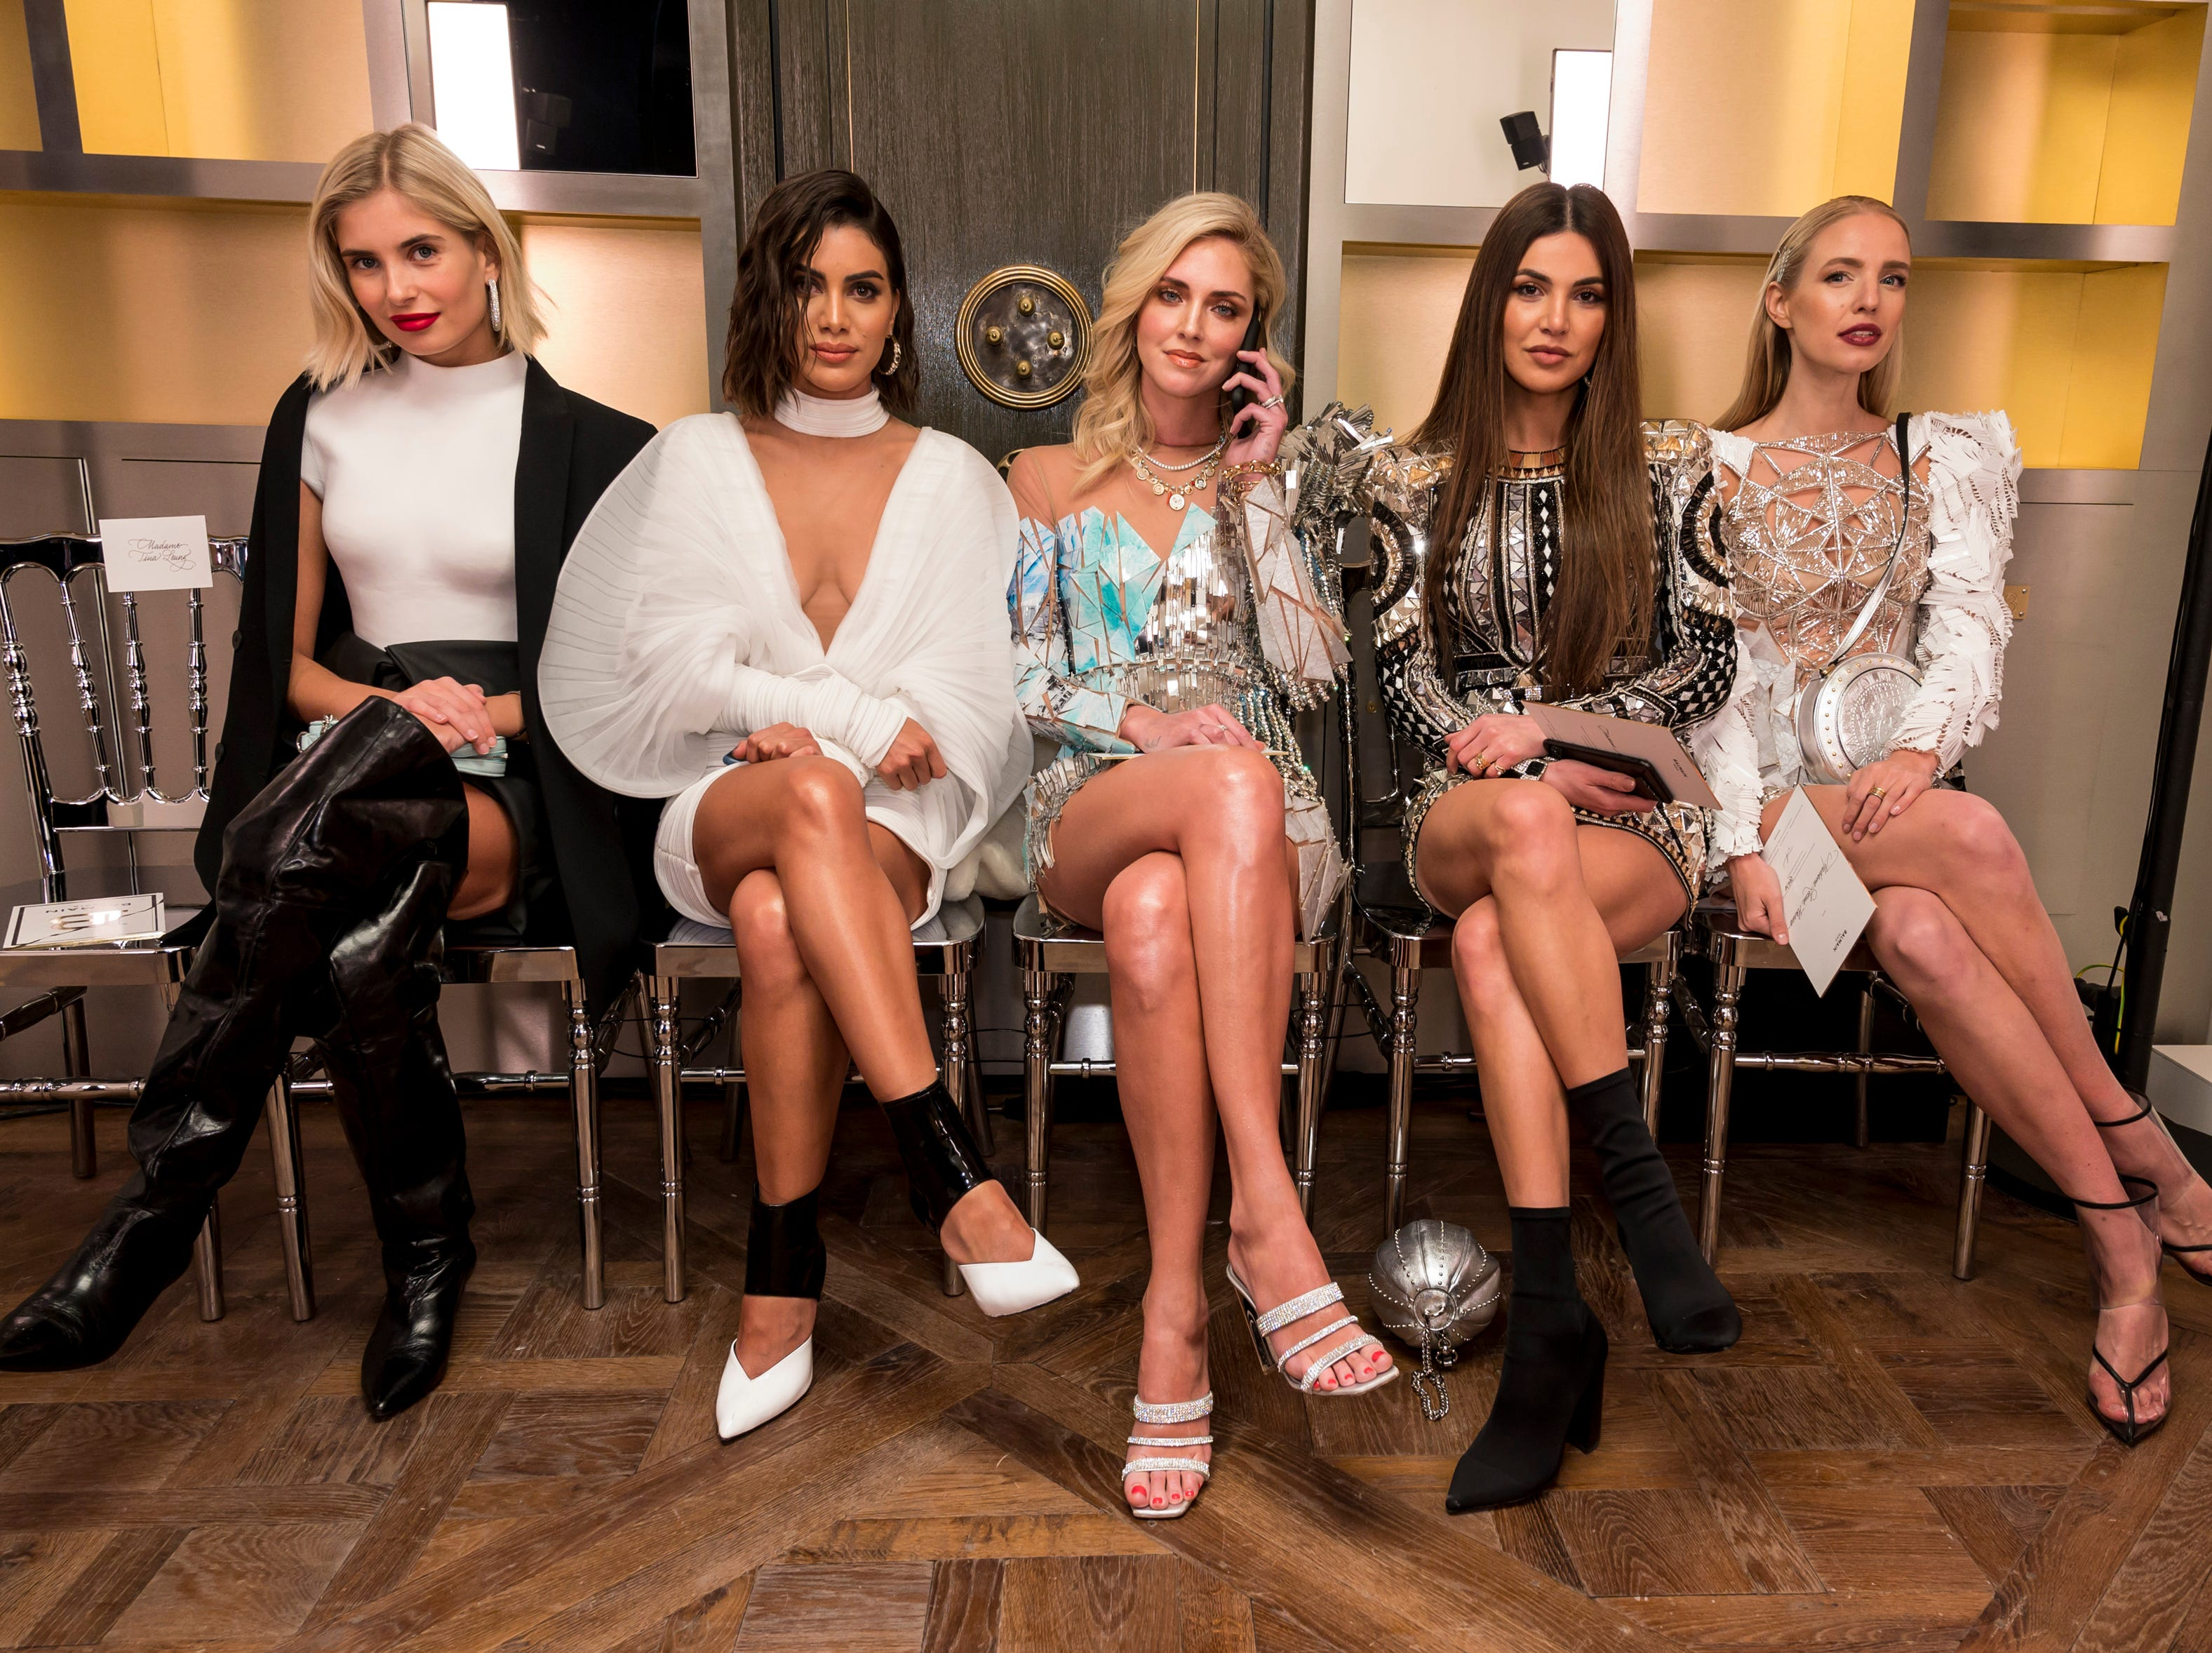 Xenia Adonts, Camila Coelho, Chiara Ferragni, Negin Mirsalehi and Leonie Hanne attend the Balmain Paris Haute Couture Spring Summer 2019 show as part of Paris Fashion Week on January 23, 2019 in Paris, France.